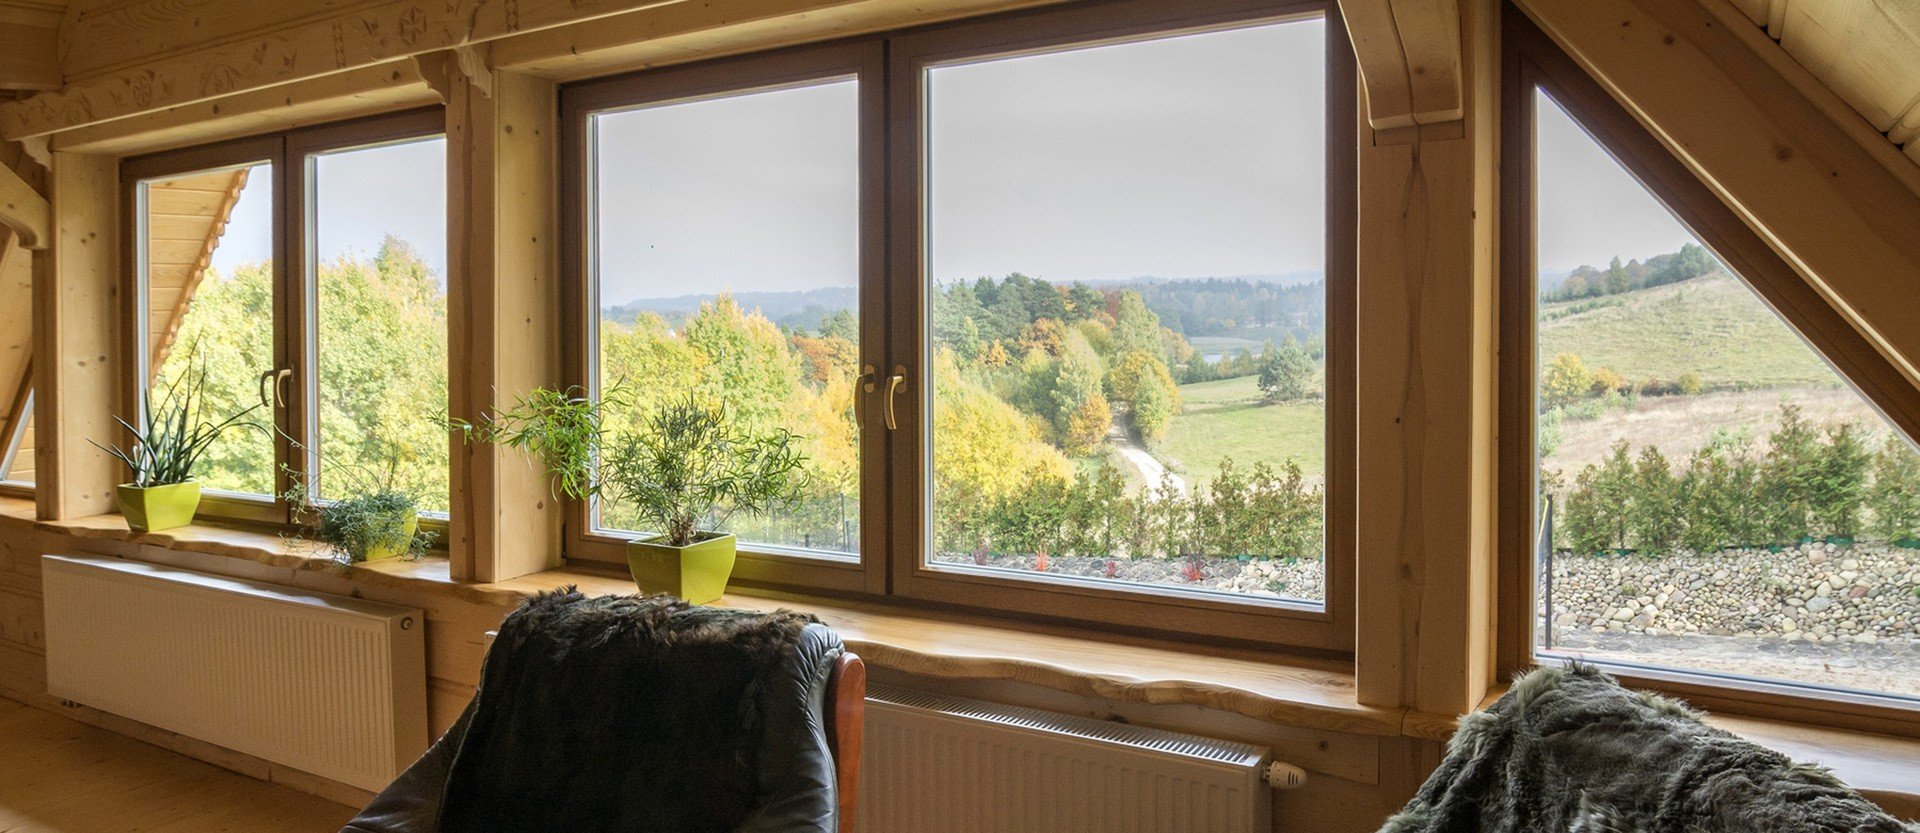 Autumn is coming, it's the highest time for regulation and maintenance of windows!